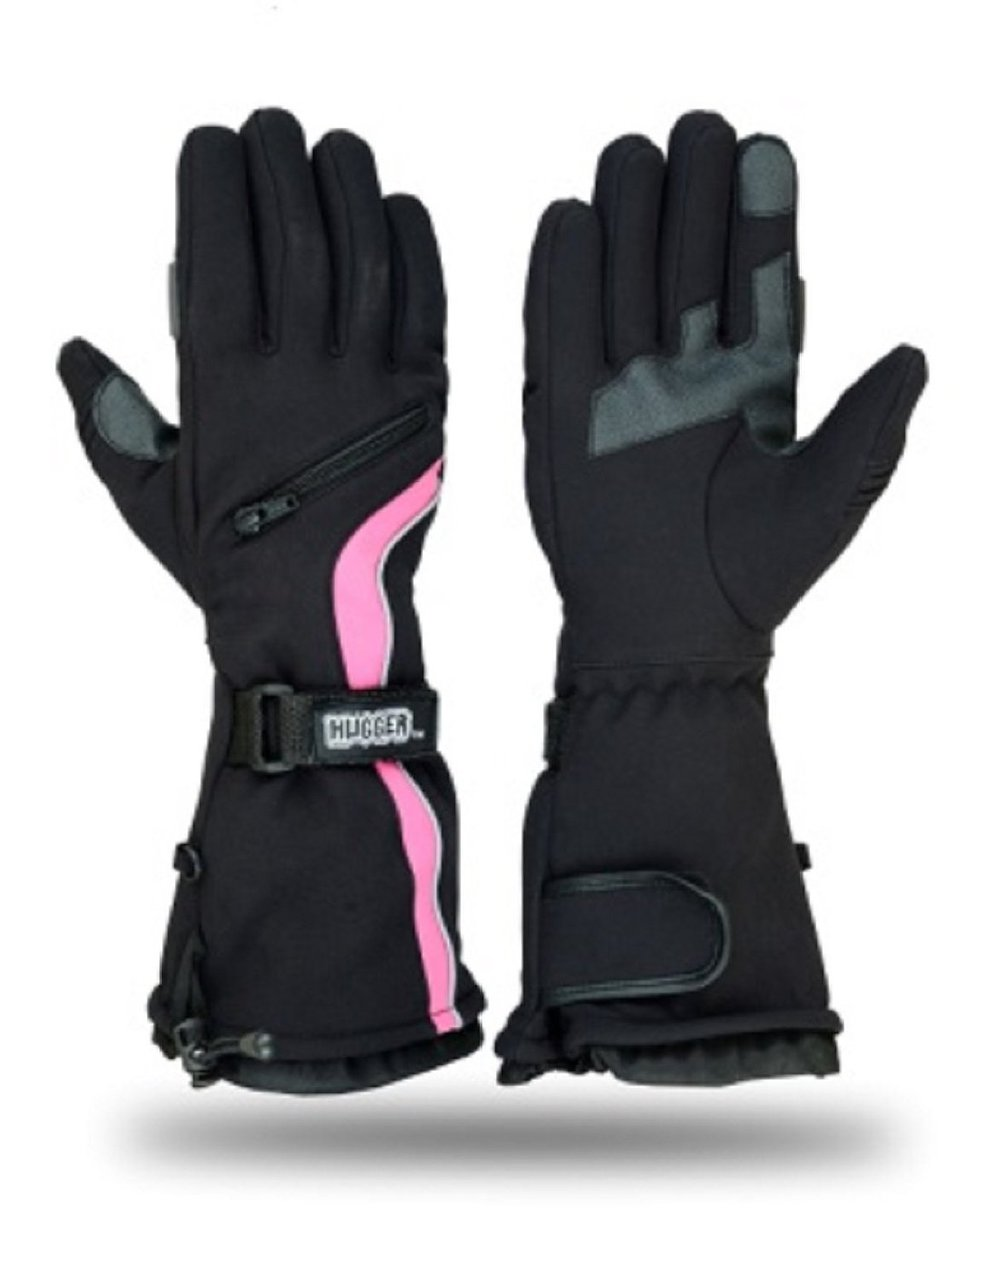 Hugger women's Textile Guantlet Snowmobile Gloves Ski Driving Winter Riding Hand Protection